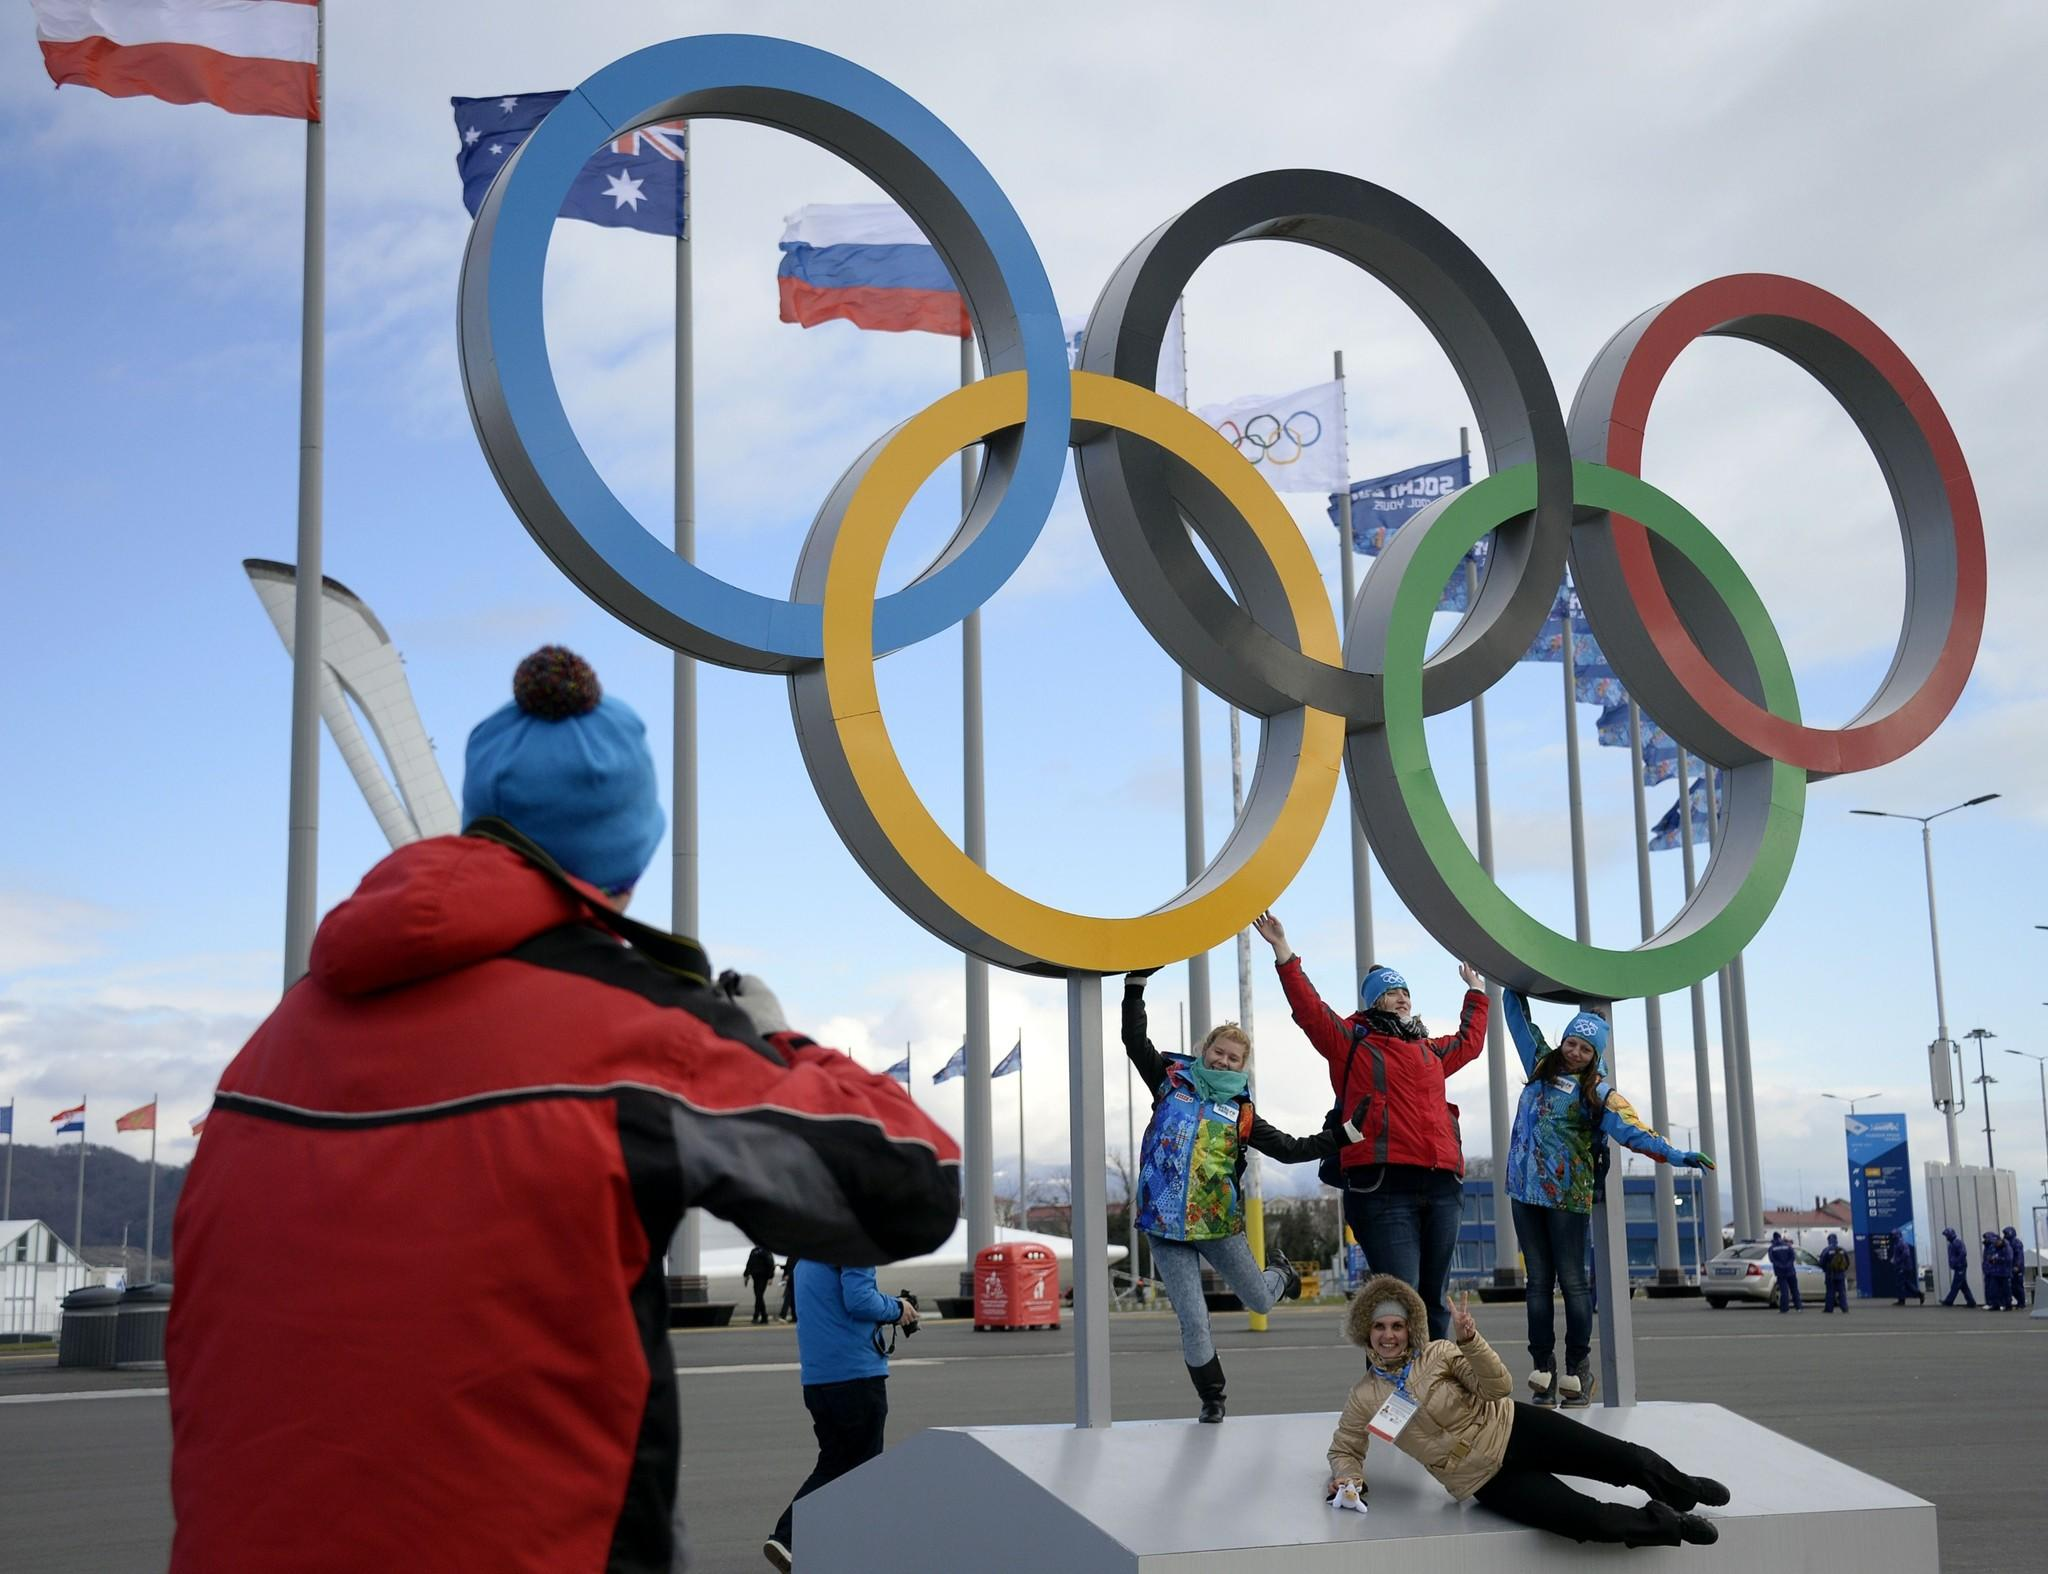 Volunteers pose in front of the Olympic rings prior to the start of the 2014 Sochi Winter Olympics on February 1, 2014 in Sochi.